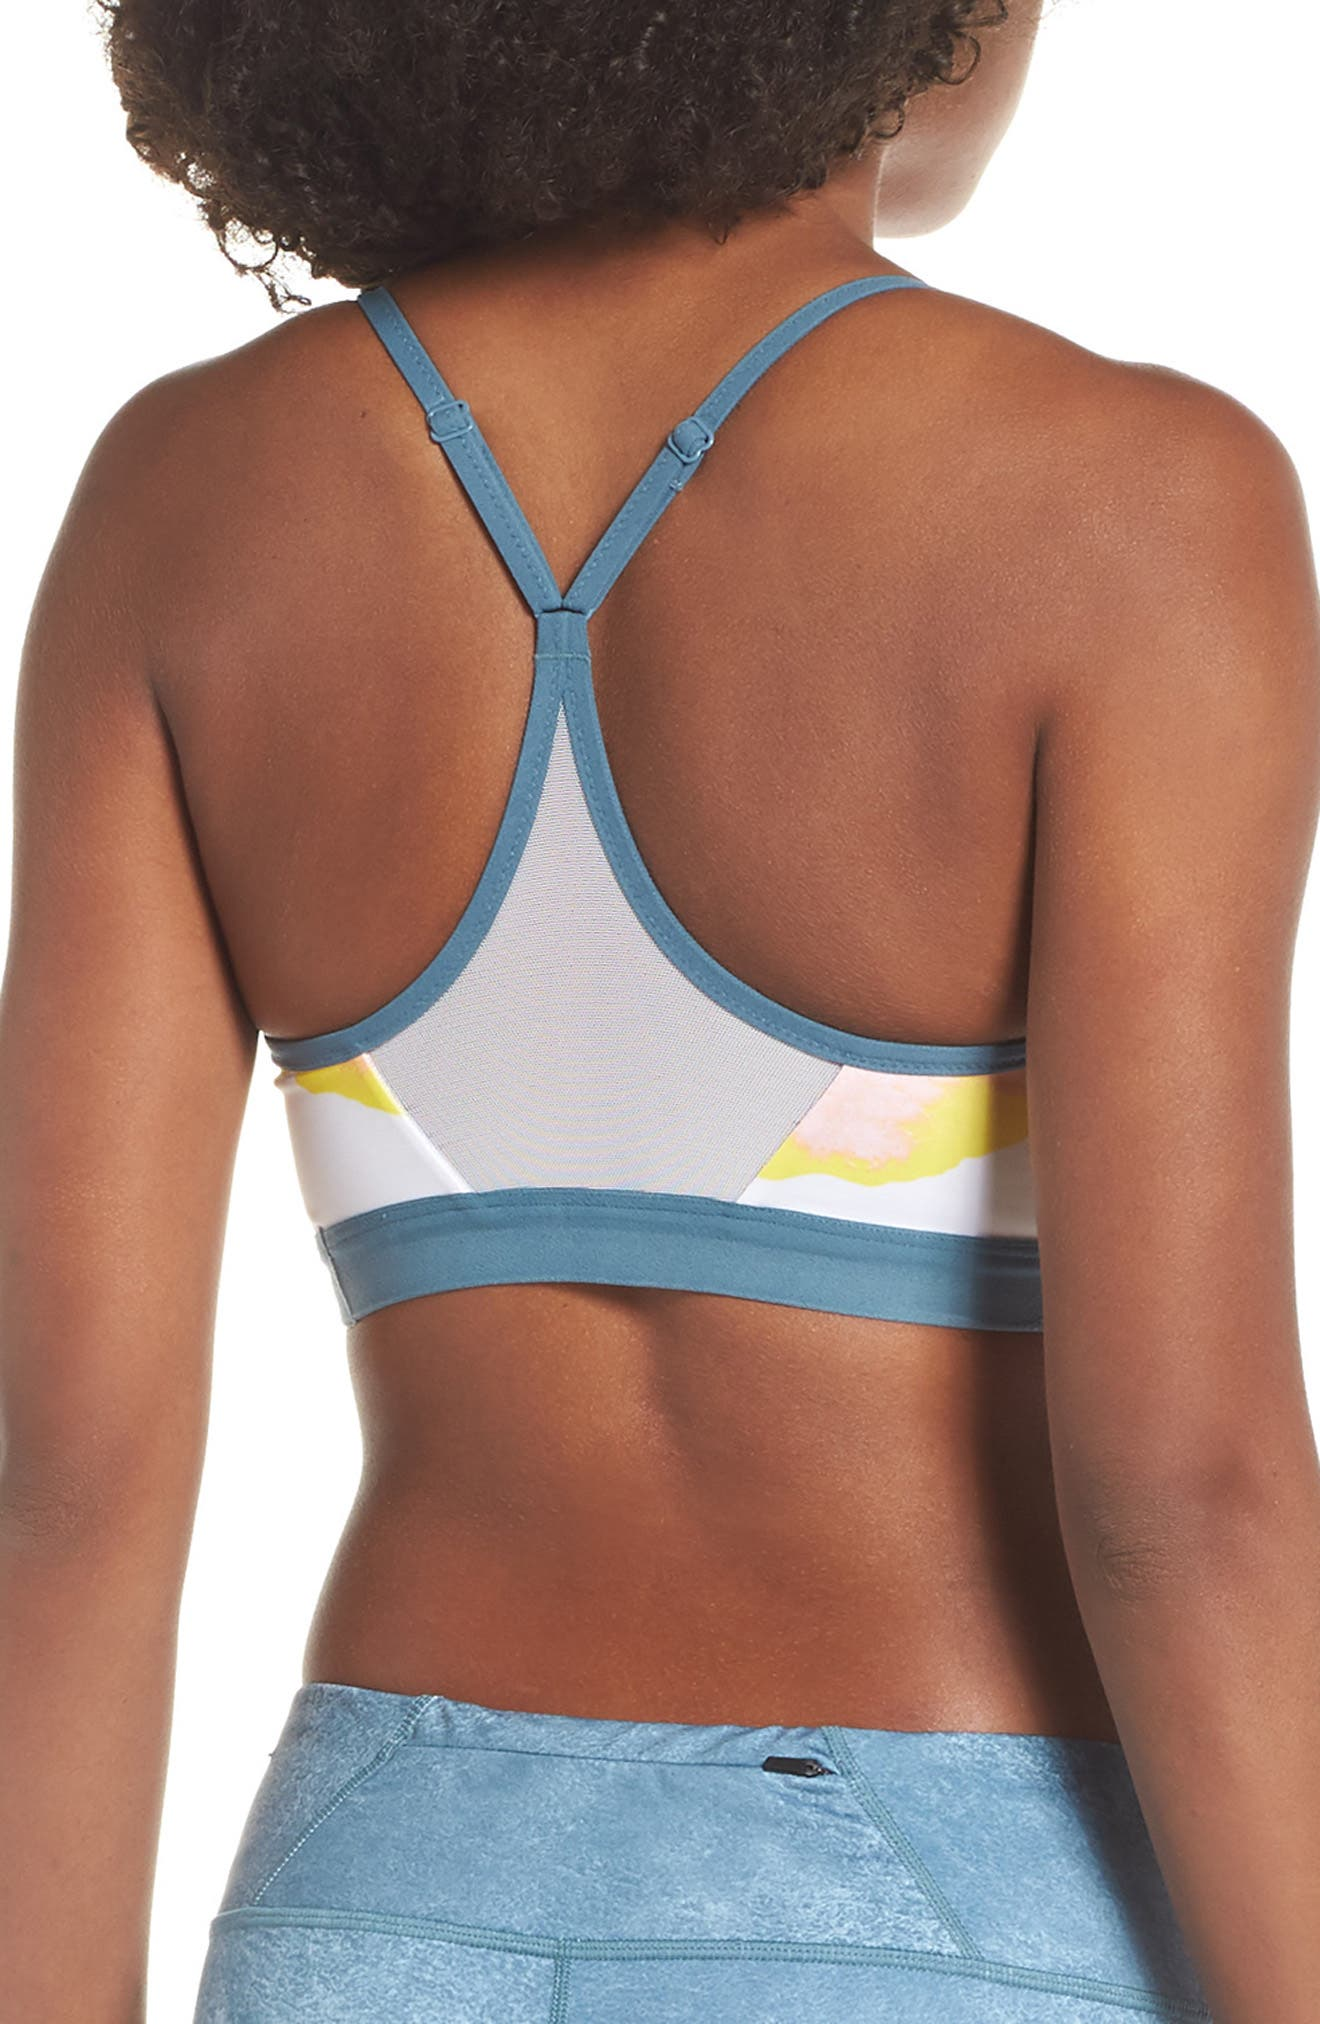 Indy Artist Sports Bra,                             Alternate thumbnail 2, color,                             WHITE/ CELESTIAL TEAL/ WHITE